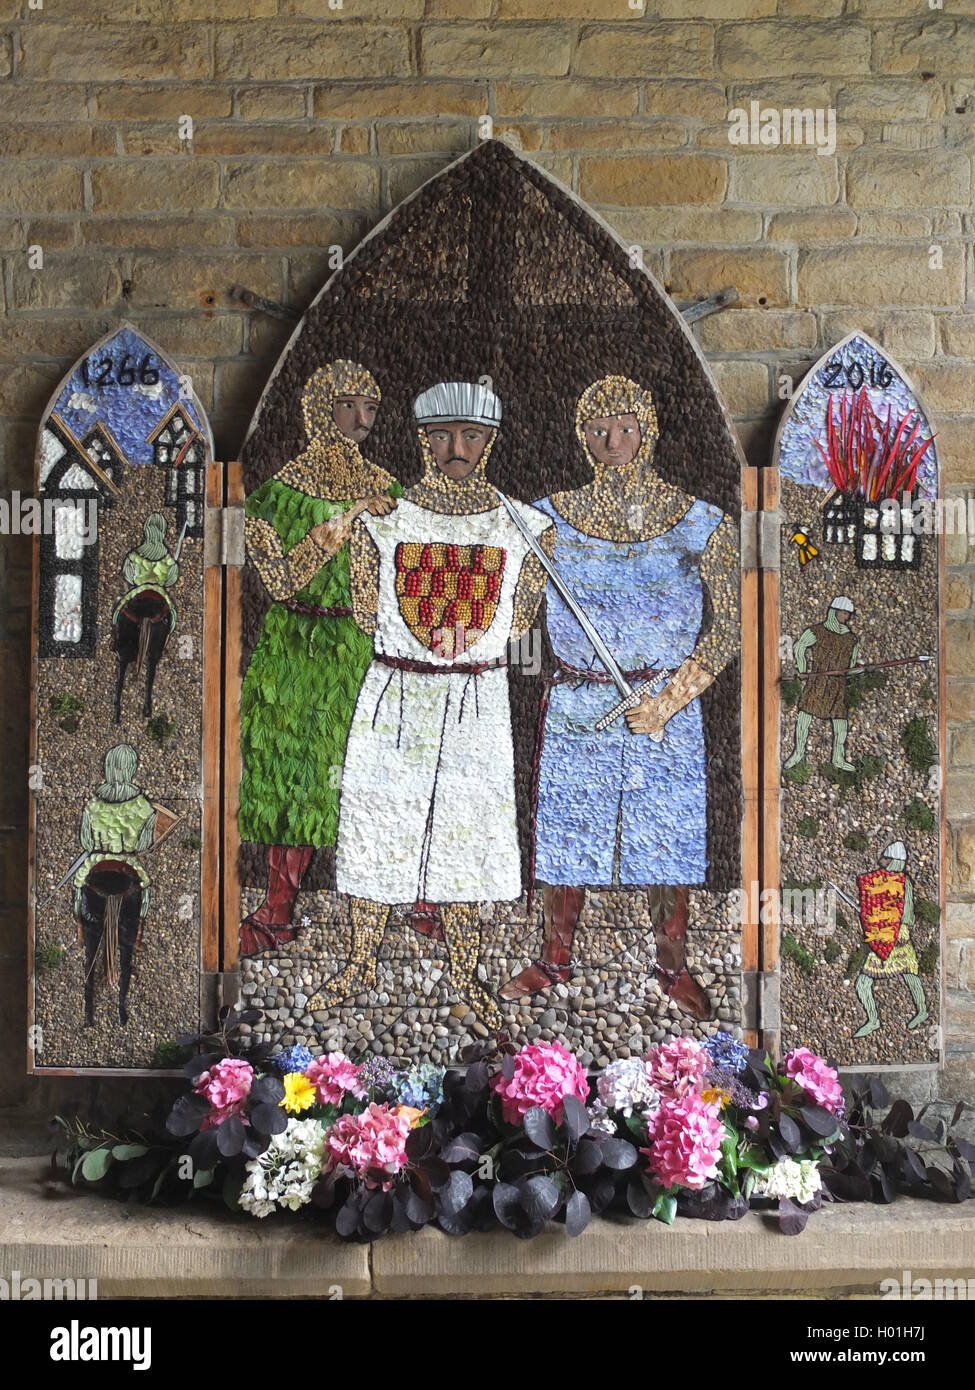 A well dressing at the Crooked Spire in Chesterfield depicting the 750th anniversary of the Battle of Chesterfield. Stock Photo